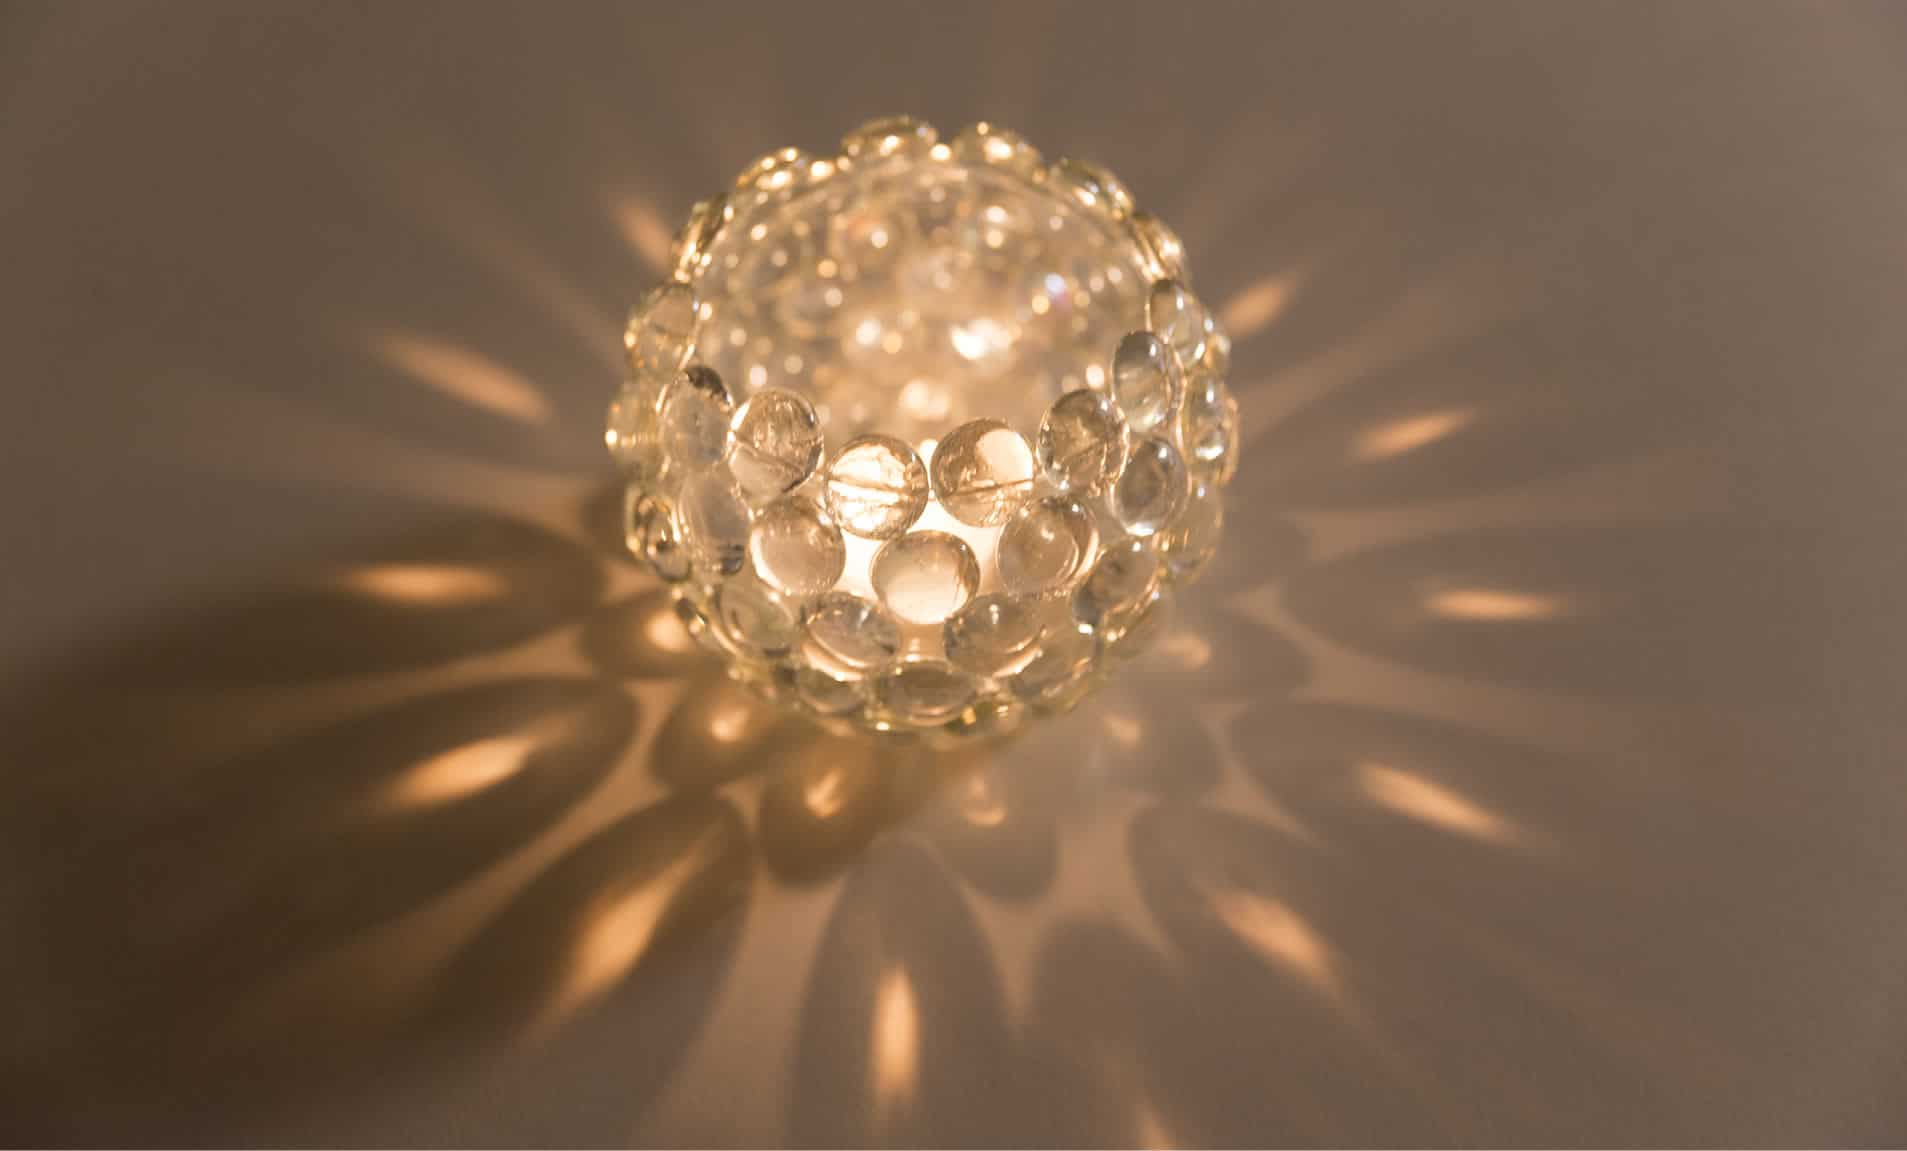 Glass gem votives are easy to make and add sparkle to any space